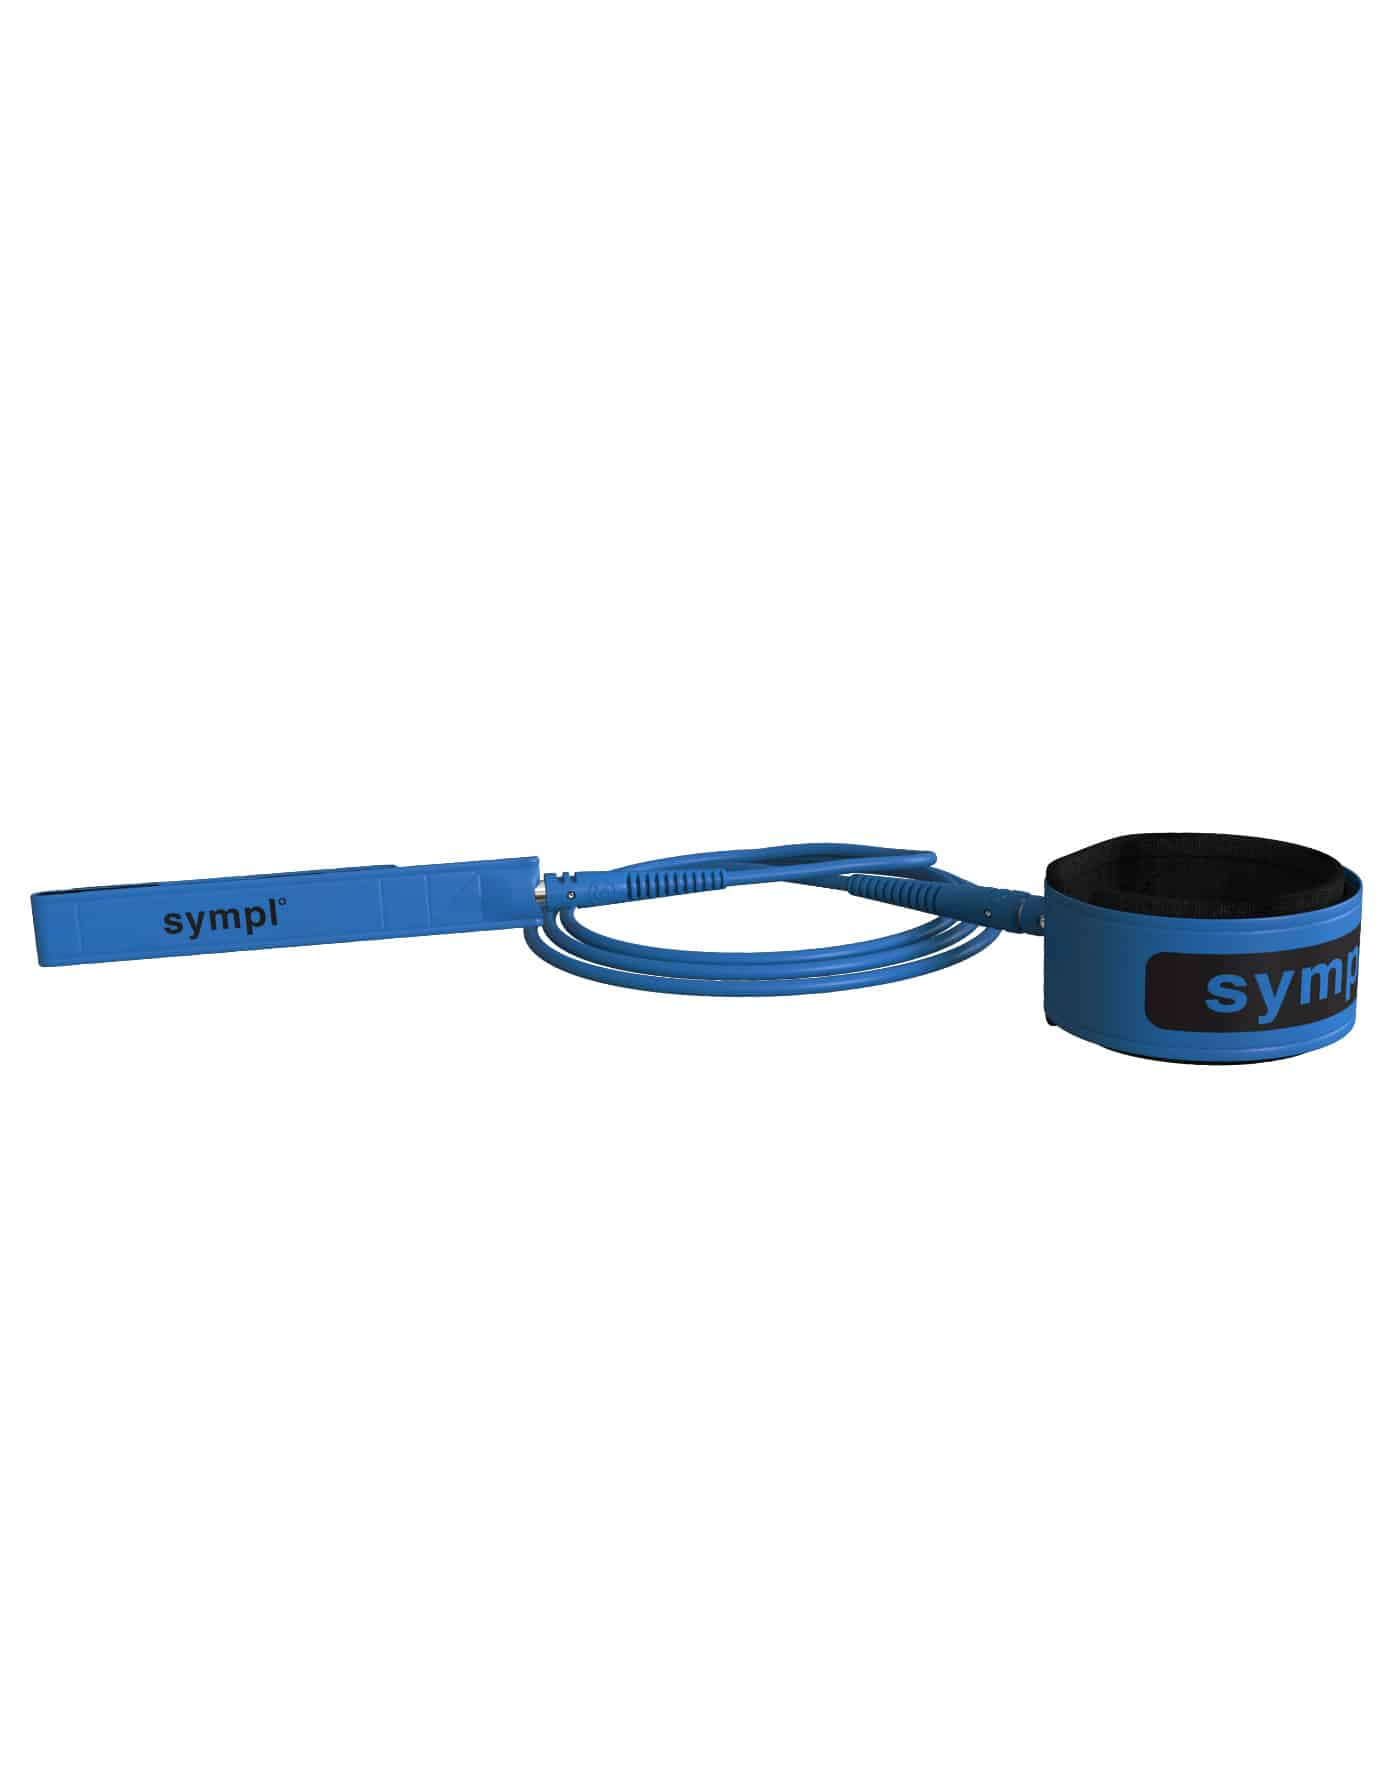 Sympl Re-Leash - Pro - 6ft - Navy